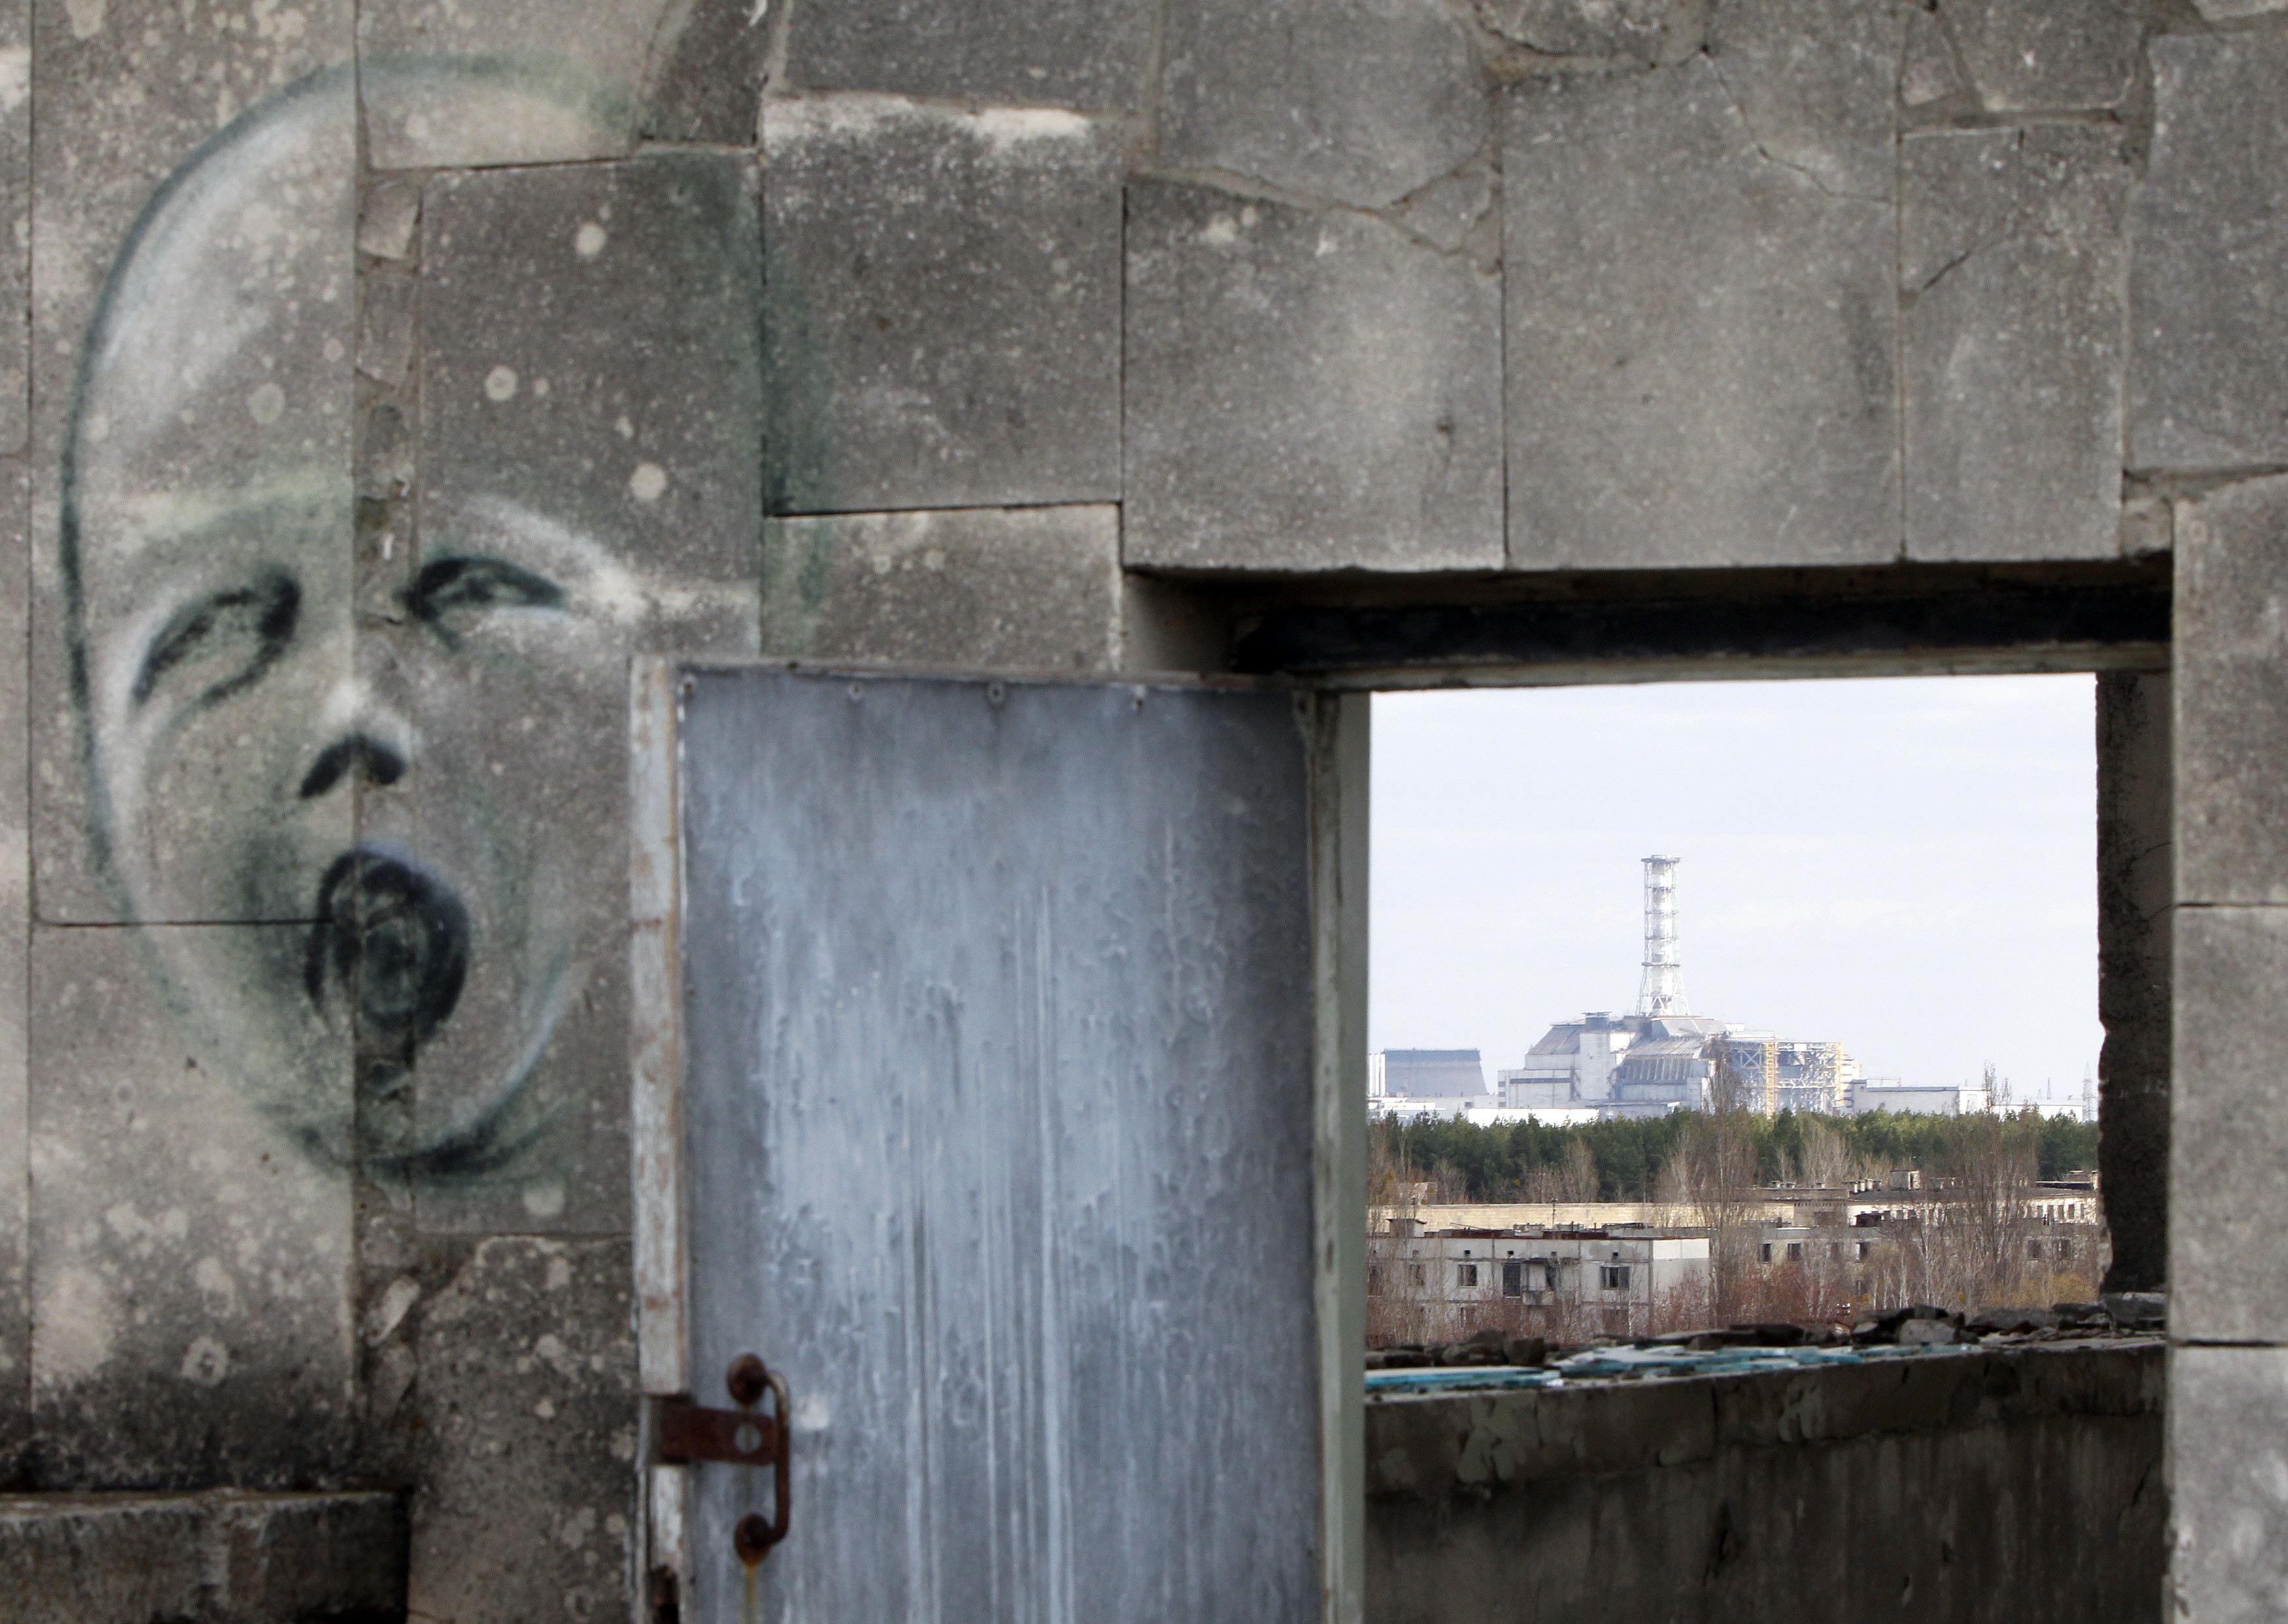 Chernobyl in pictures: 30 years on | World Economic Forum